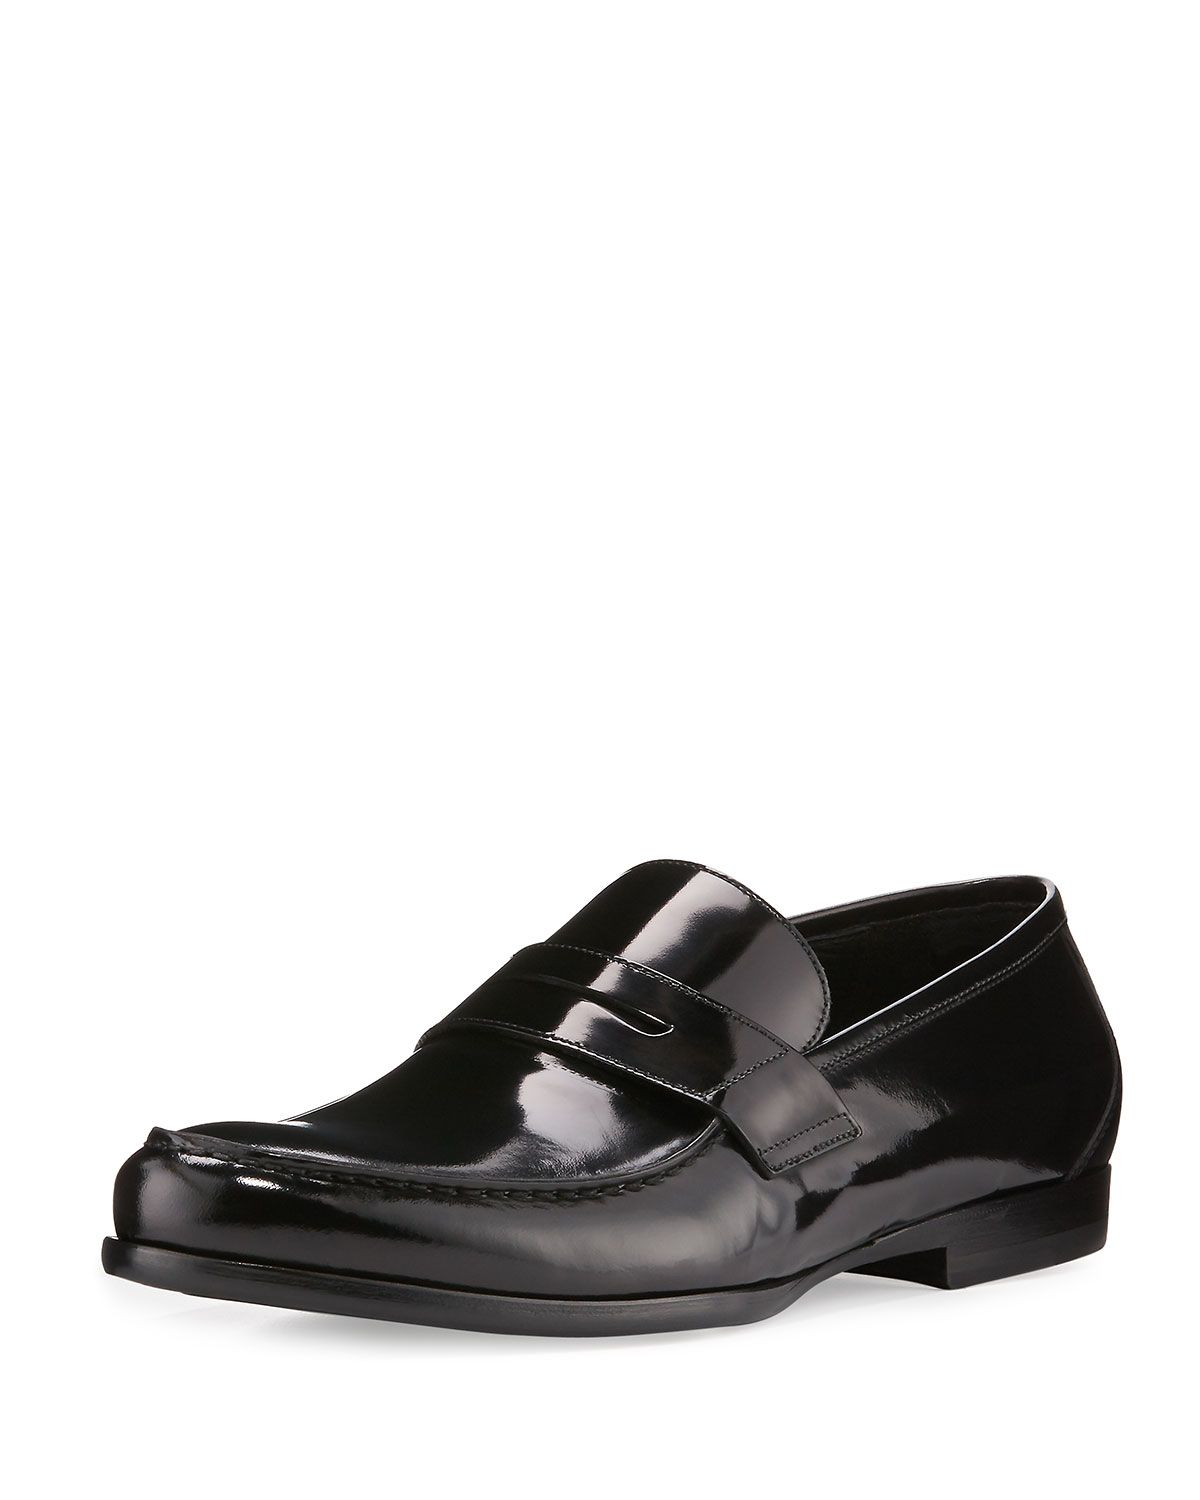 997311a2b69 James Gloss Calf Leather Penny Loafer